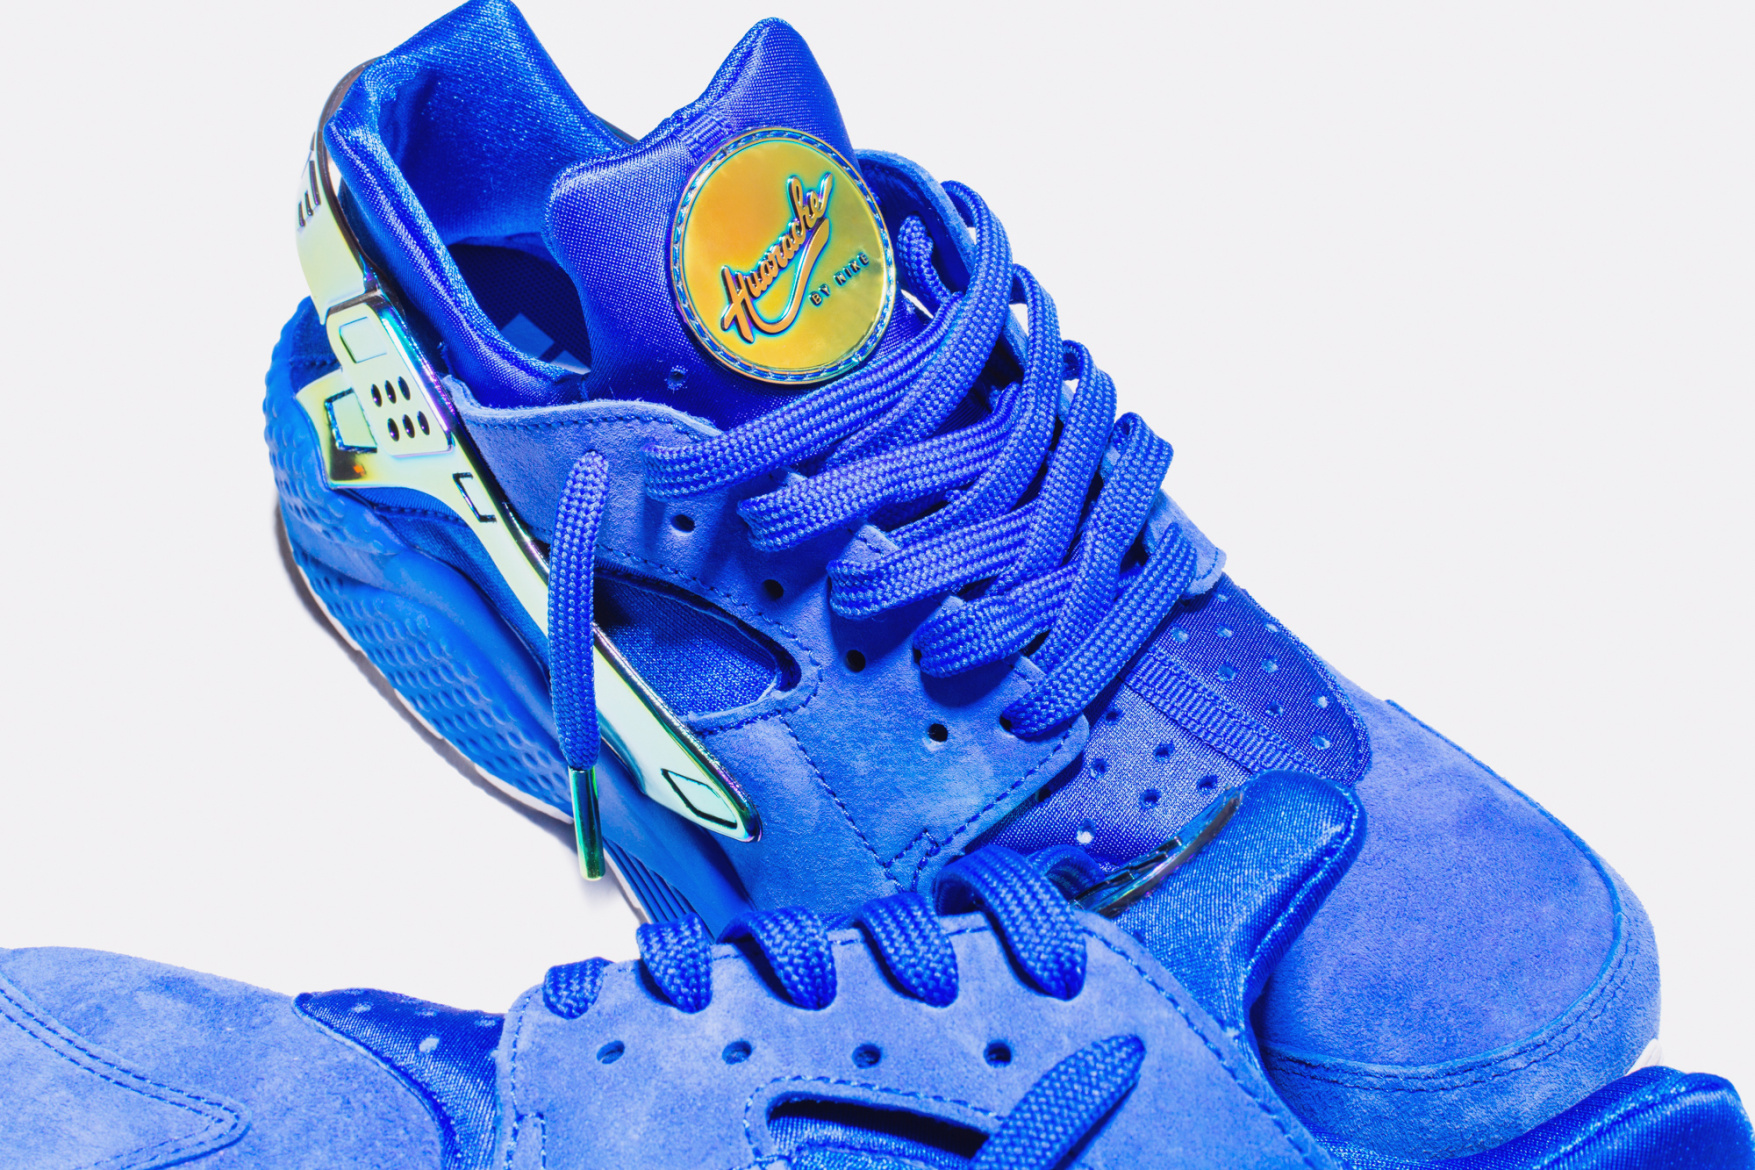 a537105a49c1 ... discount code for undefeated nike la huarache 03 81f57 774a6